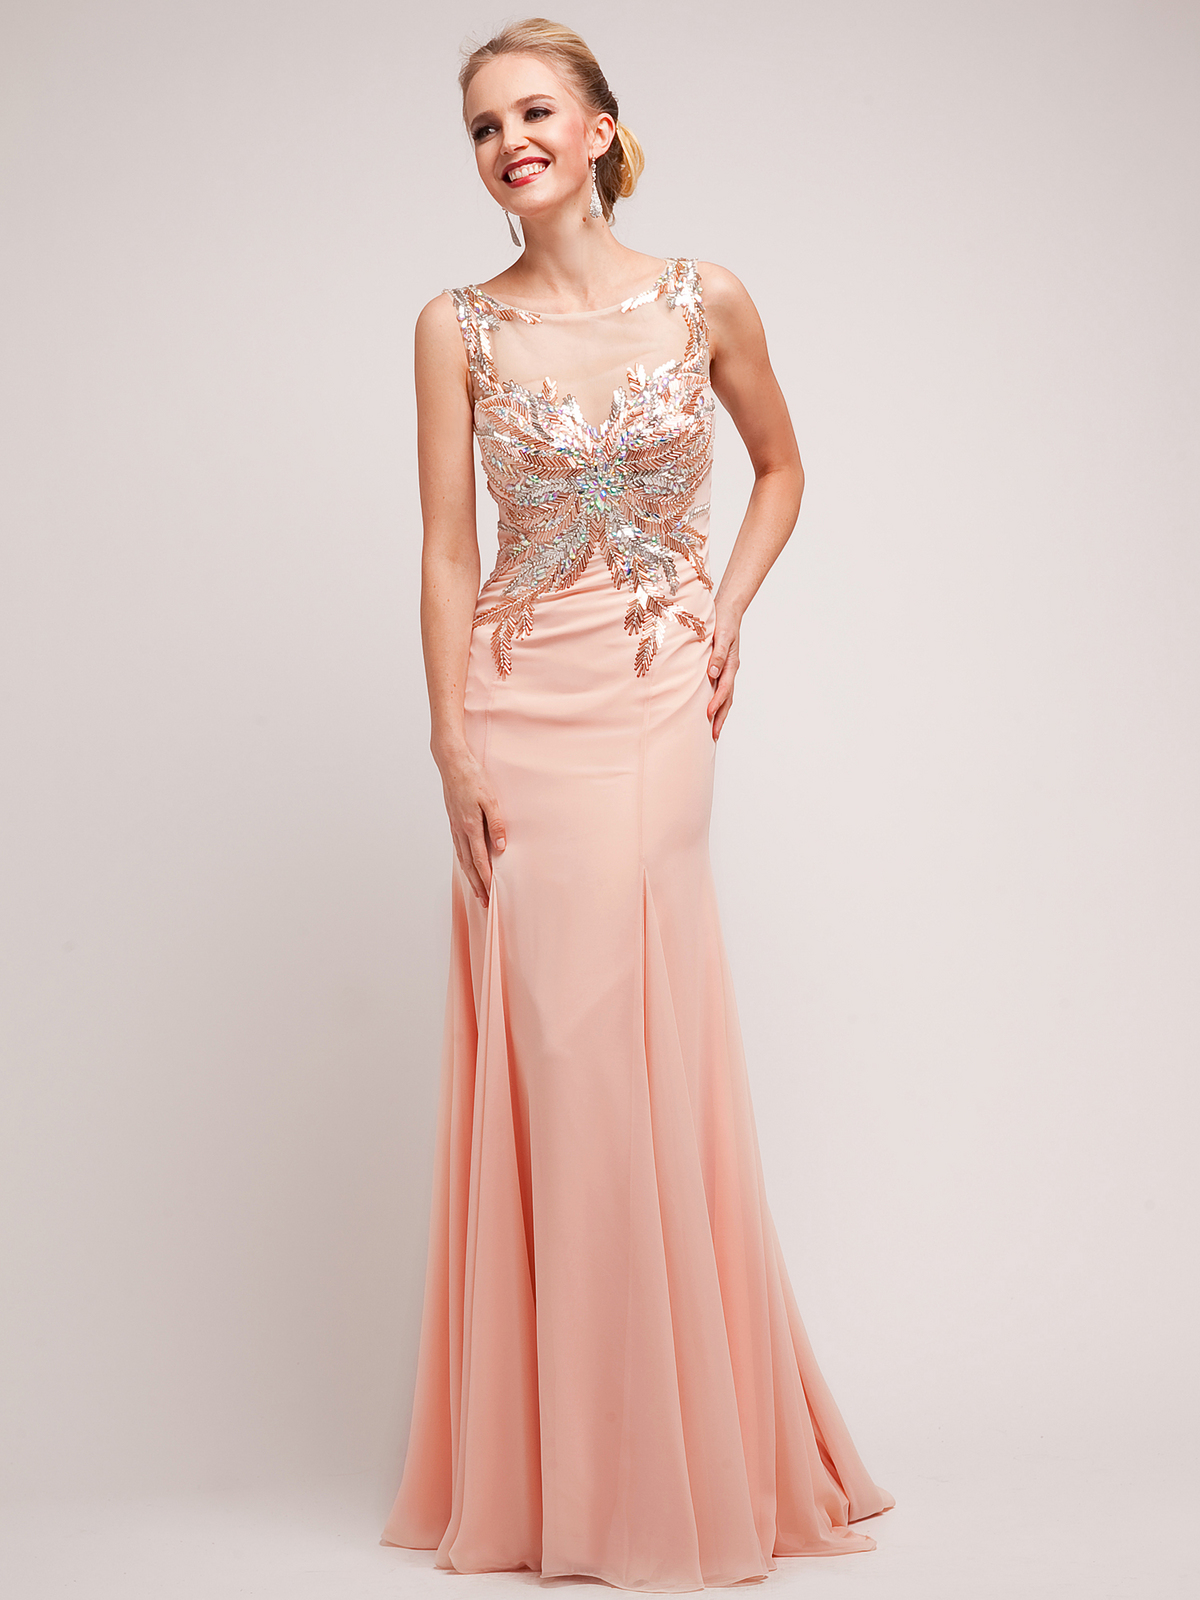 Blush Foil Leaf Fabulous Evening Dress Sung Boutique L A